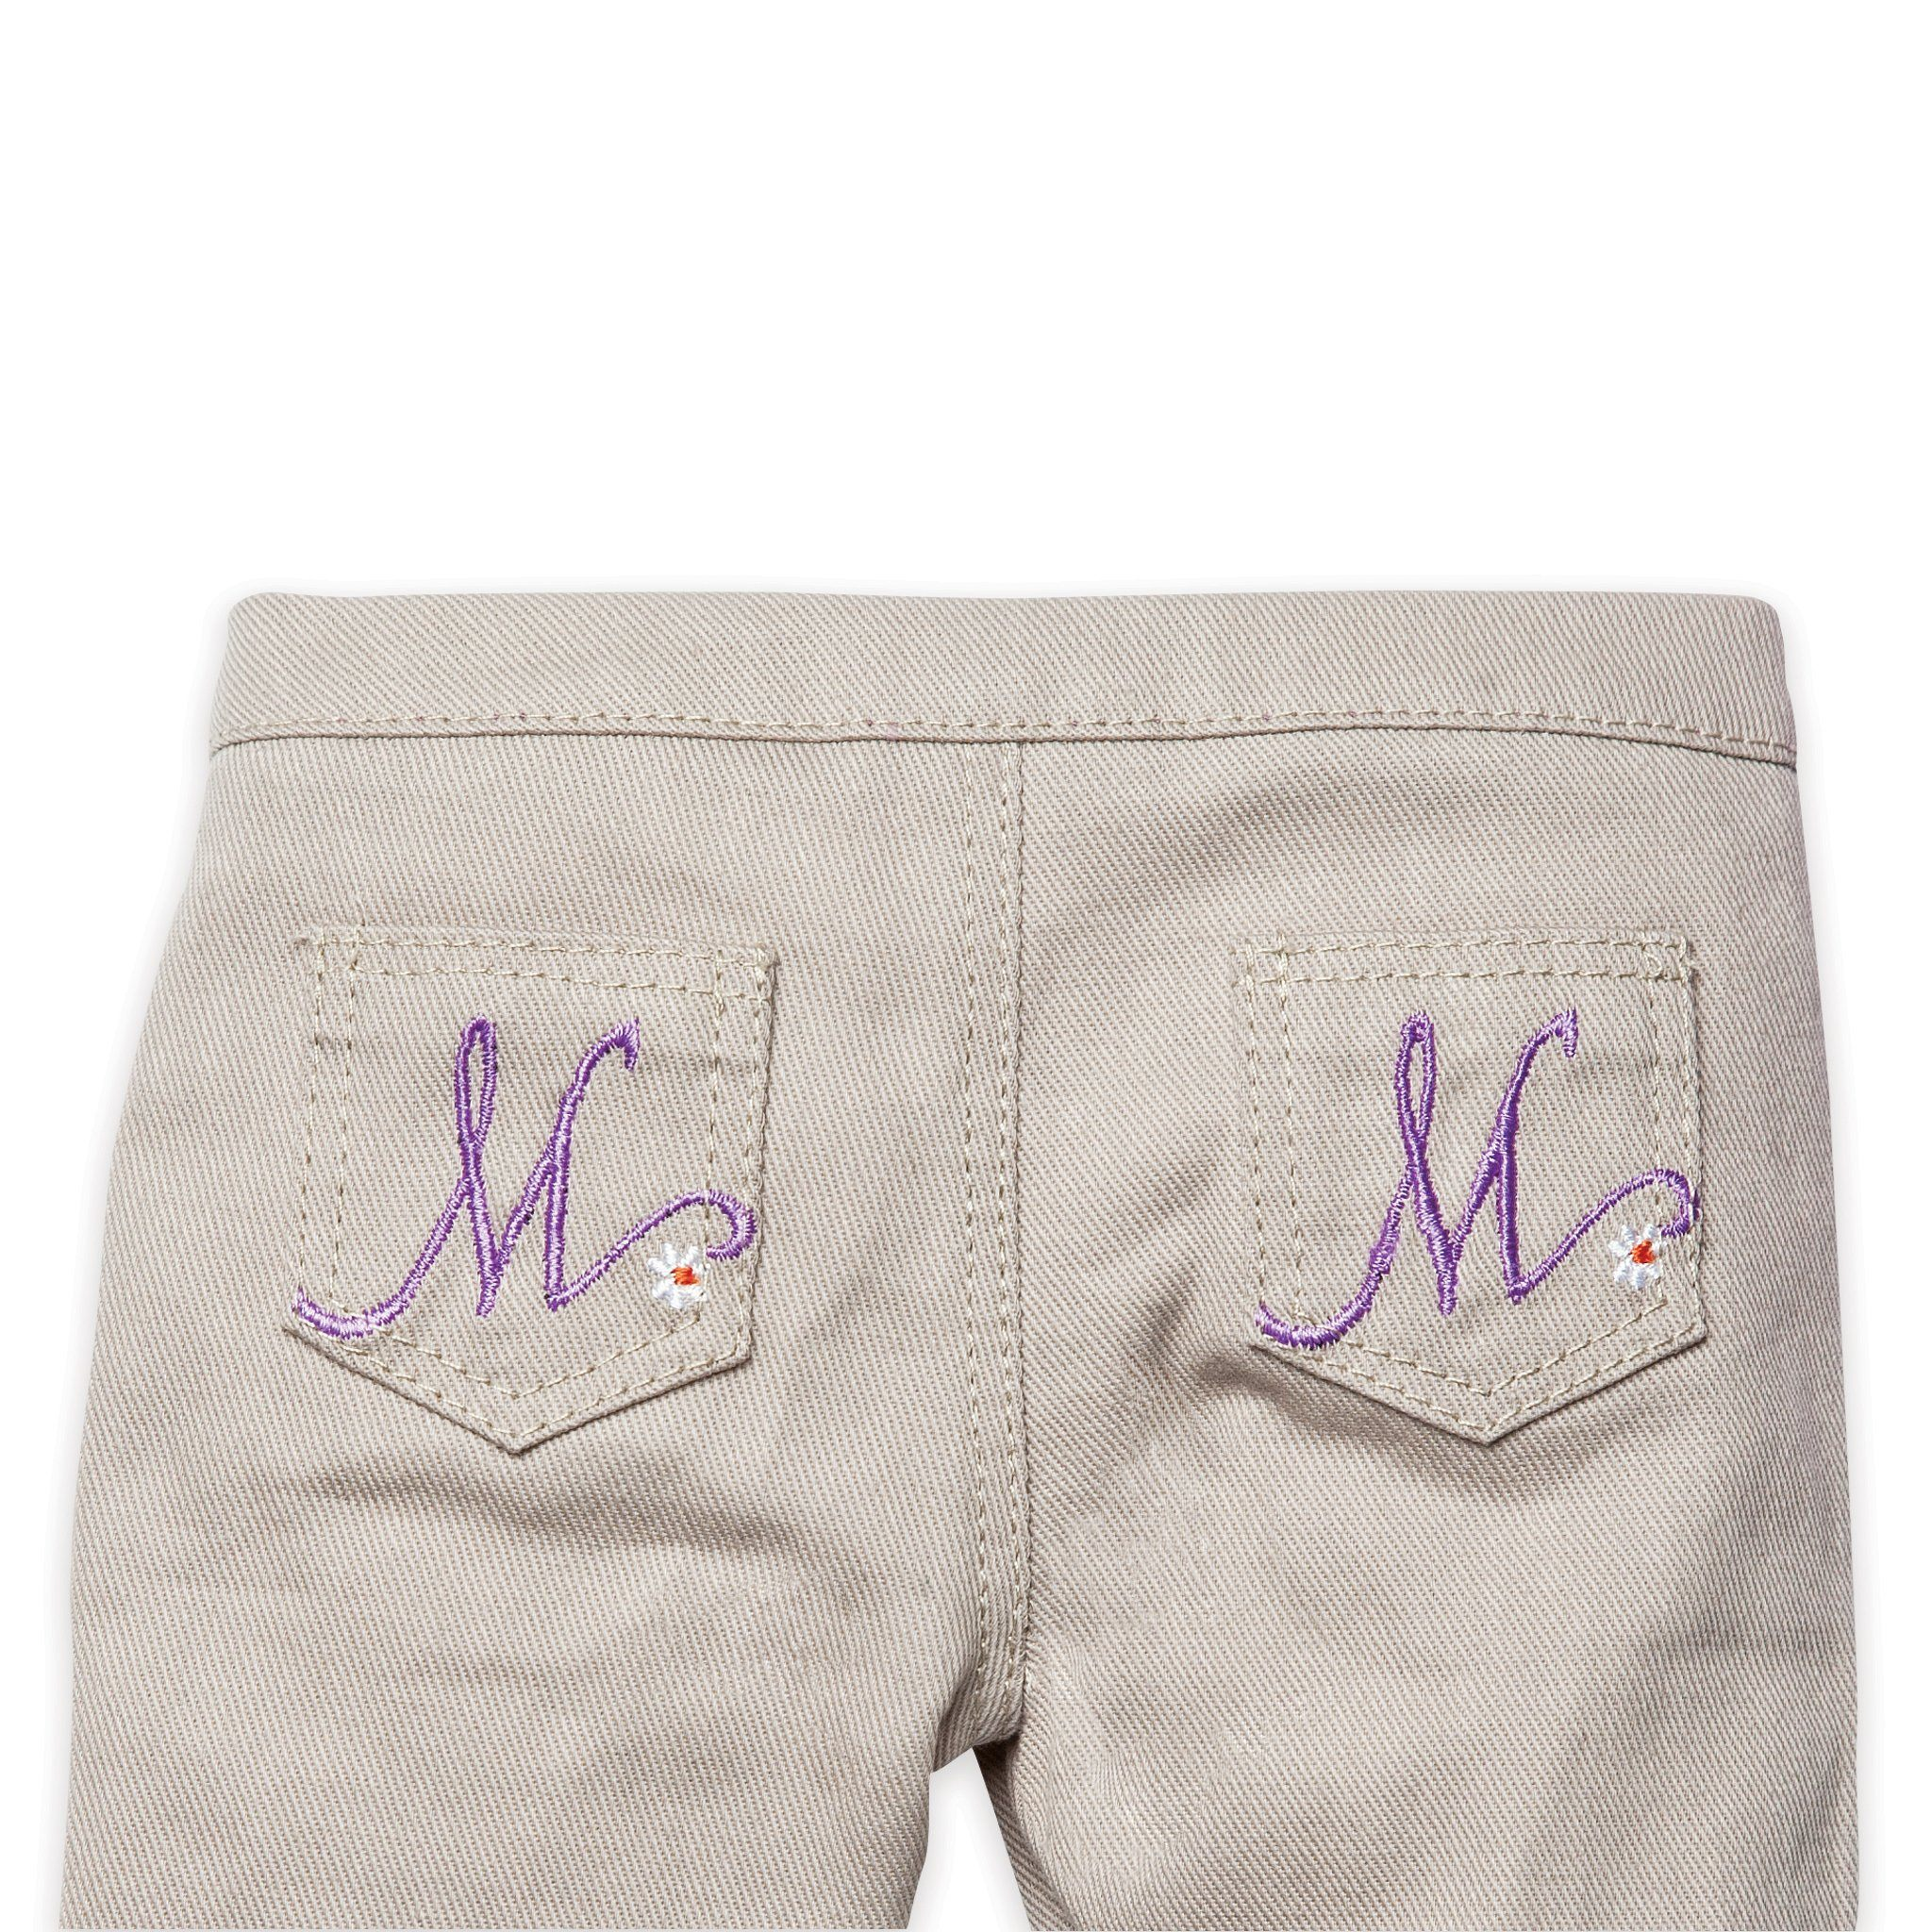 Back detail on khaki pants for 18 inch dolls